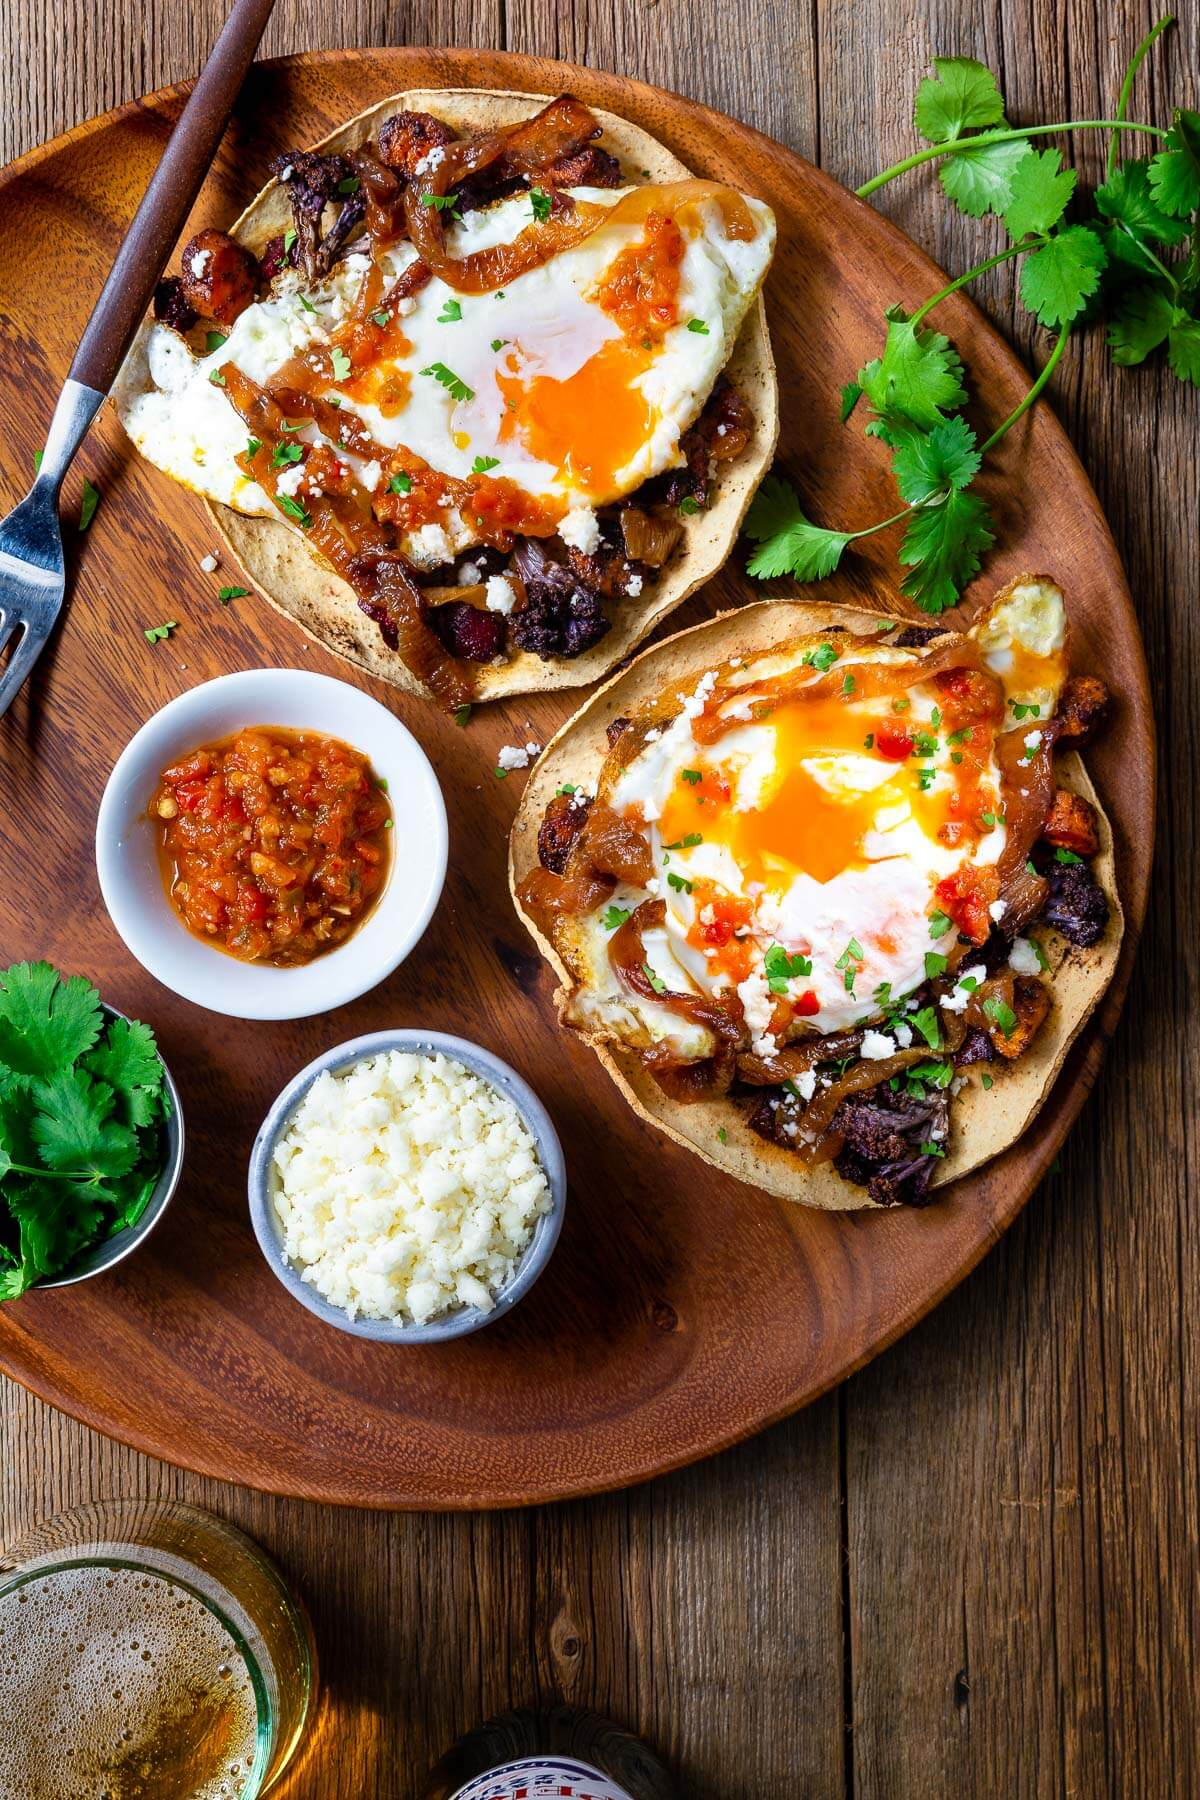 Roasted vegetable tostadas with fried eggs on a wooden plate with small bowls of salsa, crumbled cheese, and cilantro.